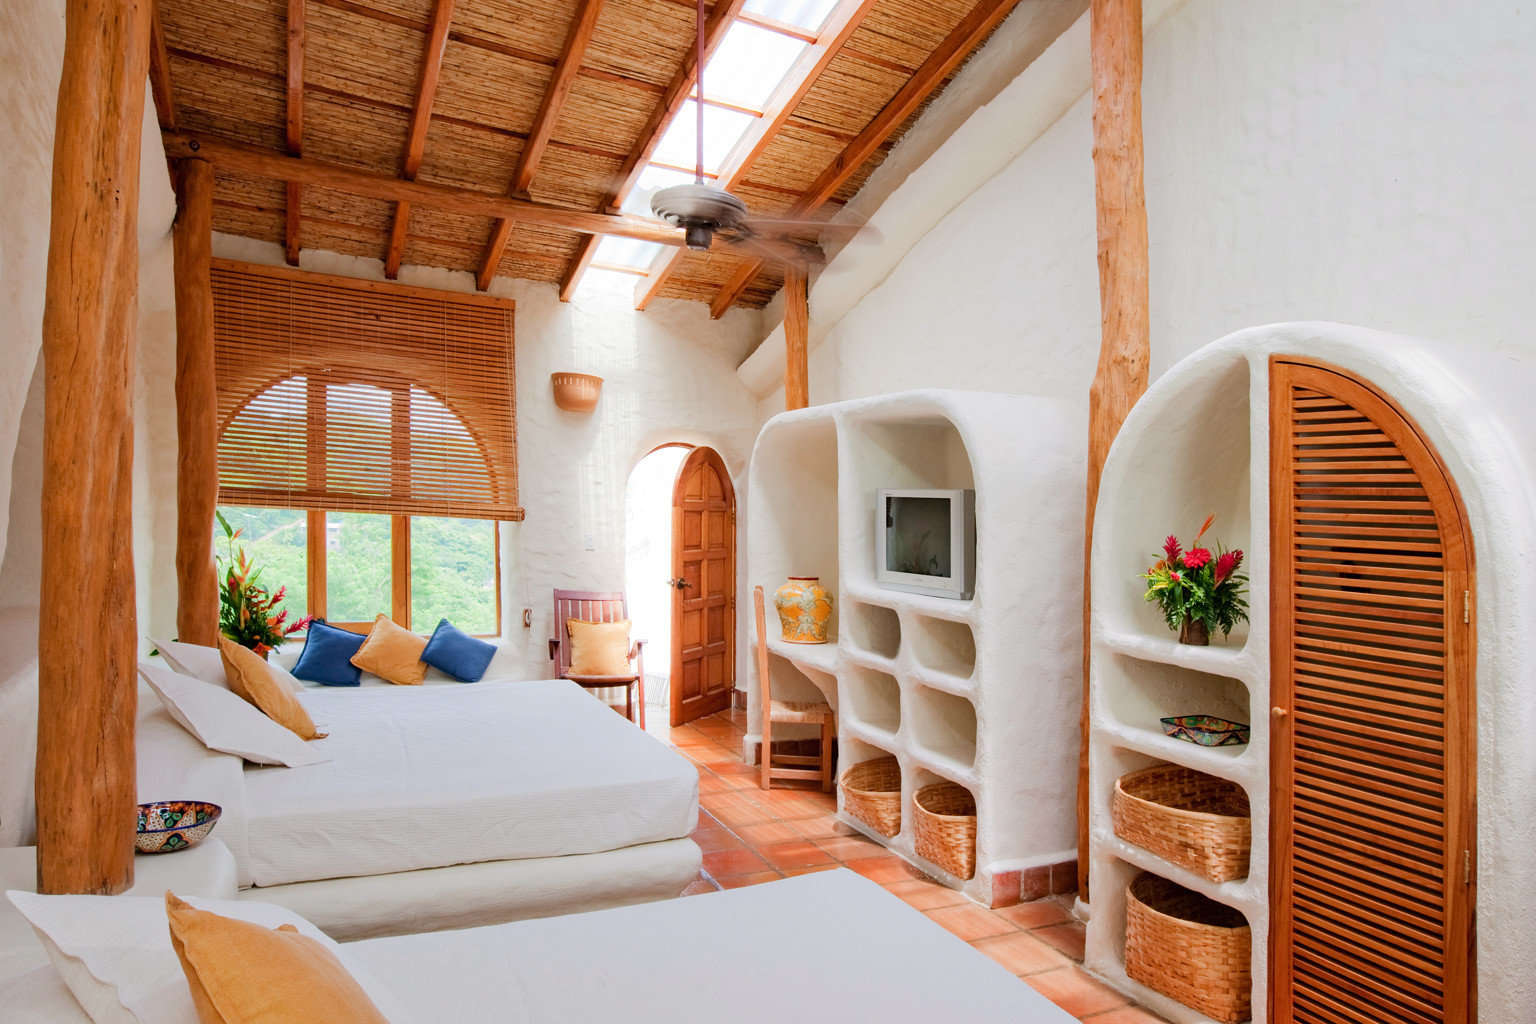 Bedroom Luxury Rustic Tropical Villa property house cottage home farmhouse